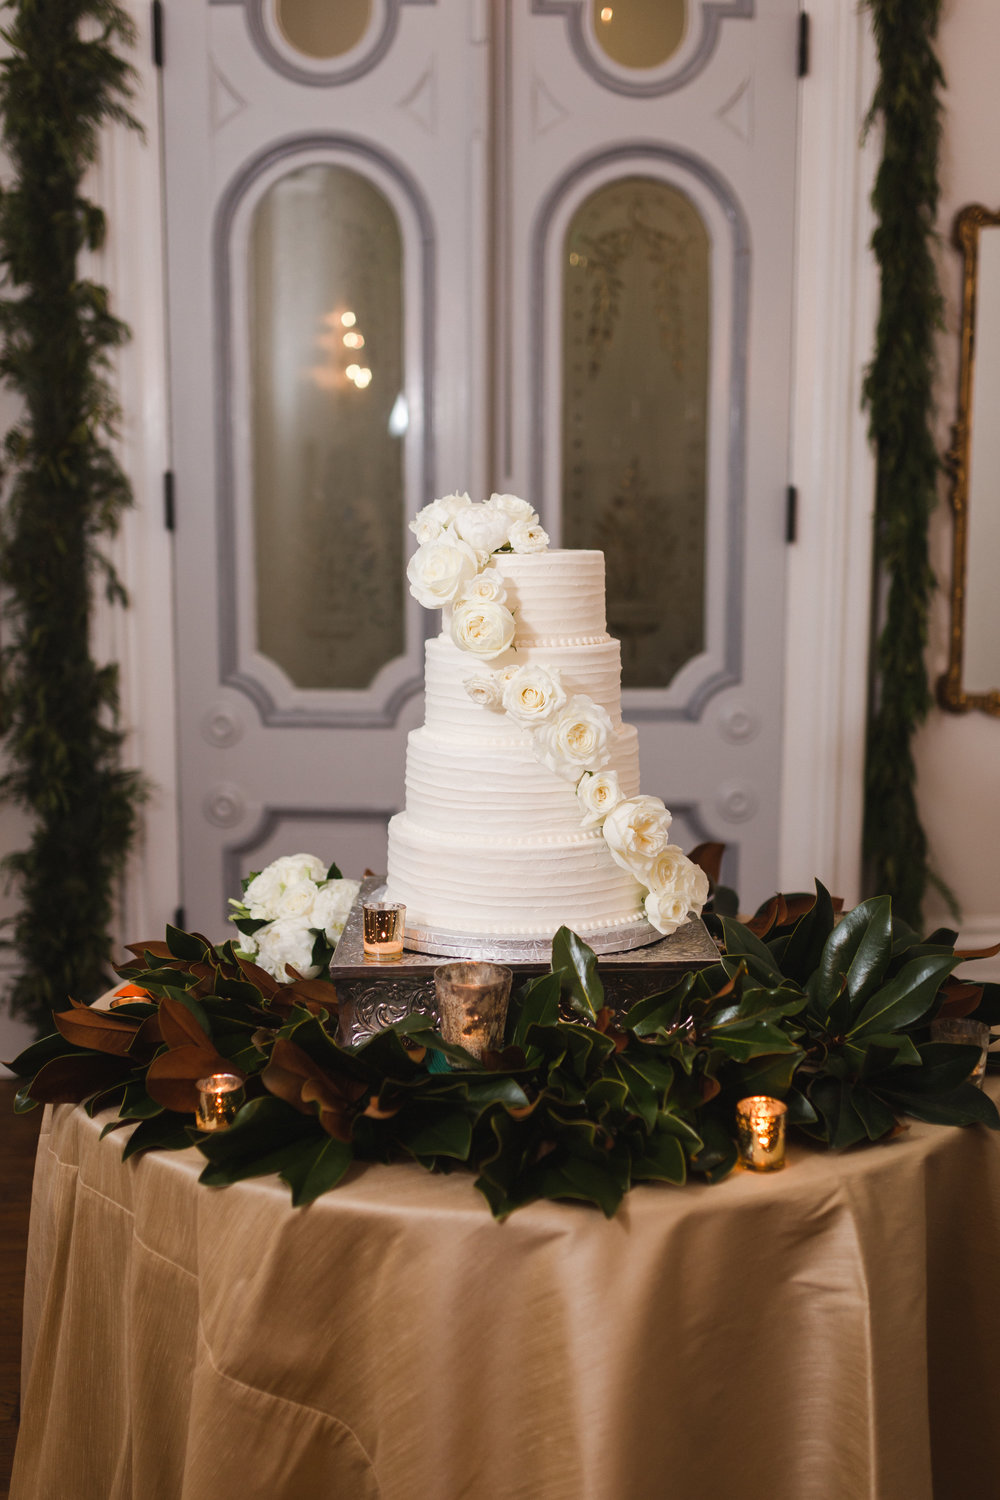 White on White Wedding Cake | Edible Art Bakery of Raleigh